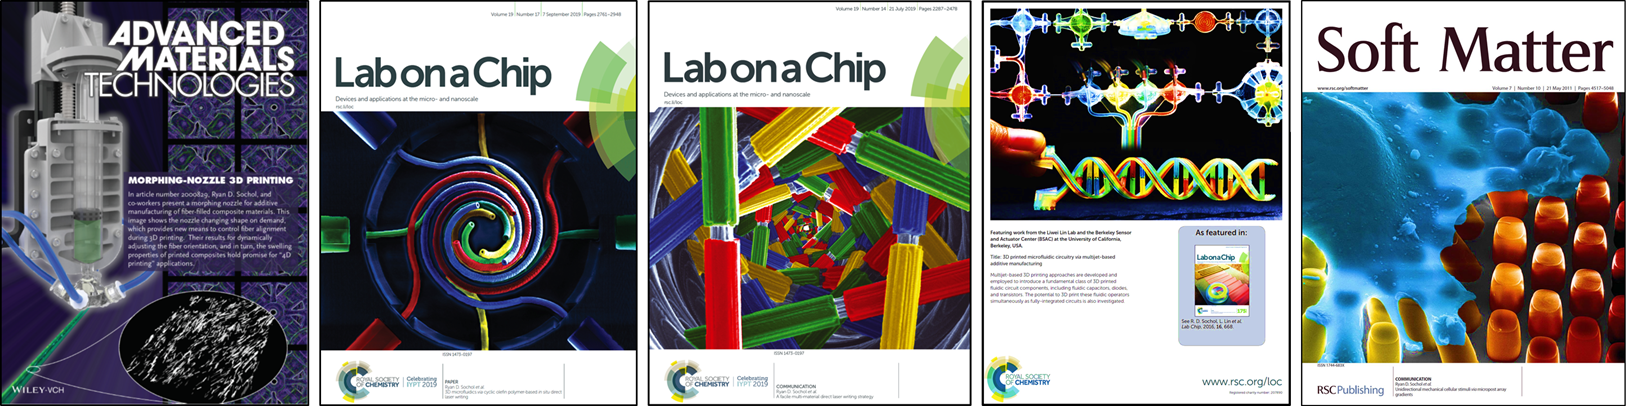 Journal covers from the BAM Lab